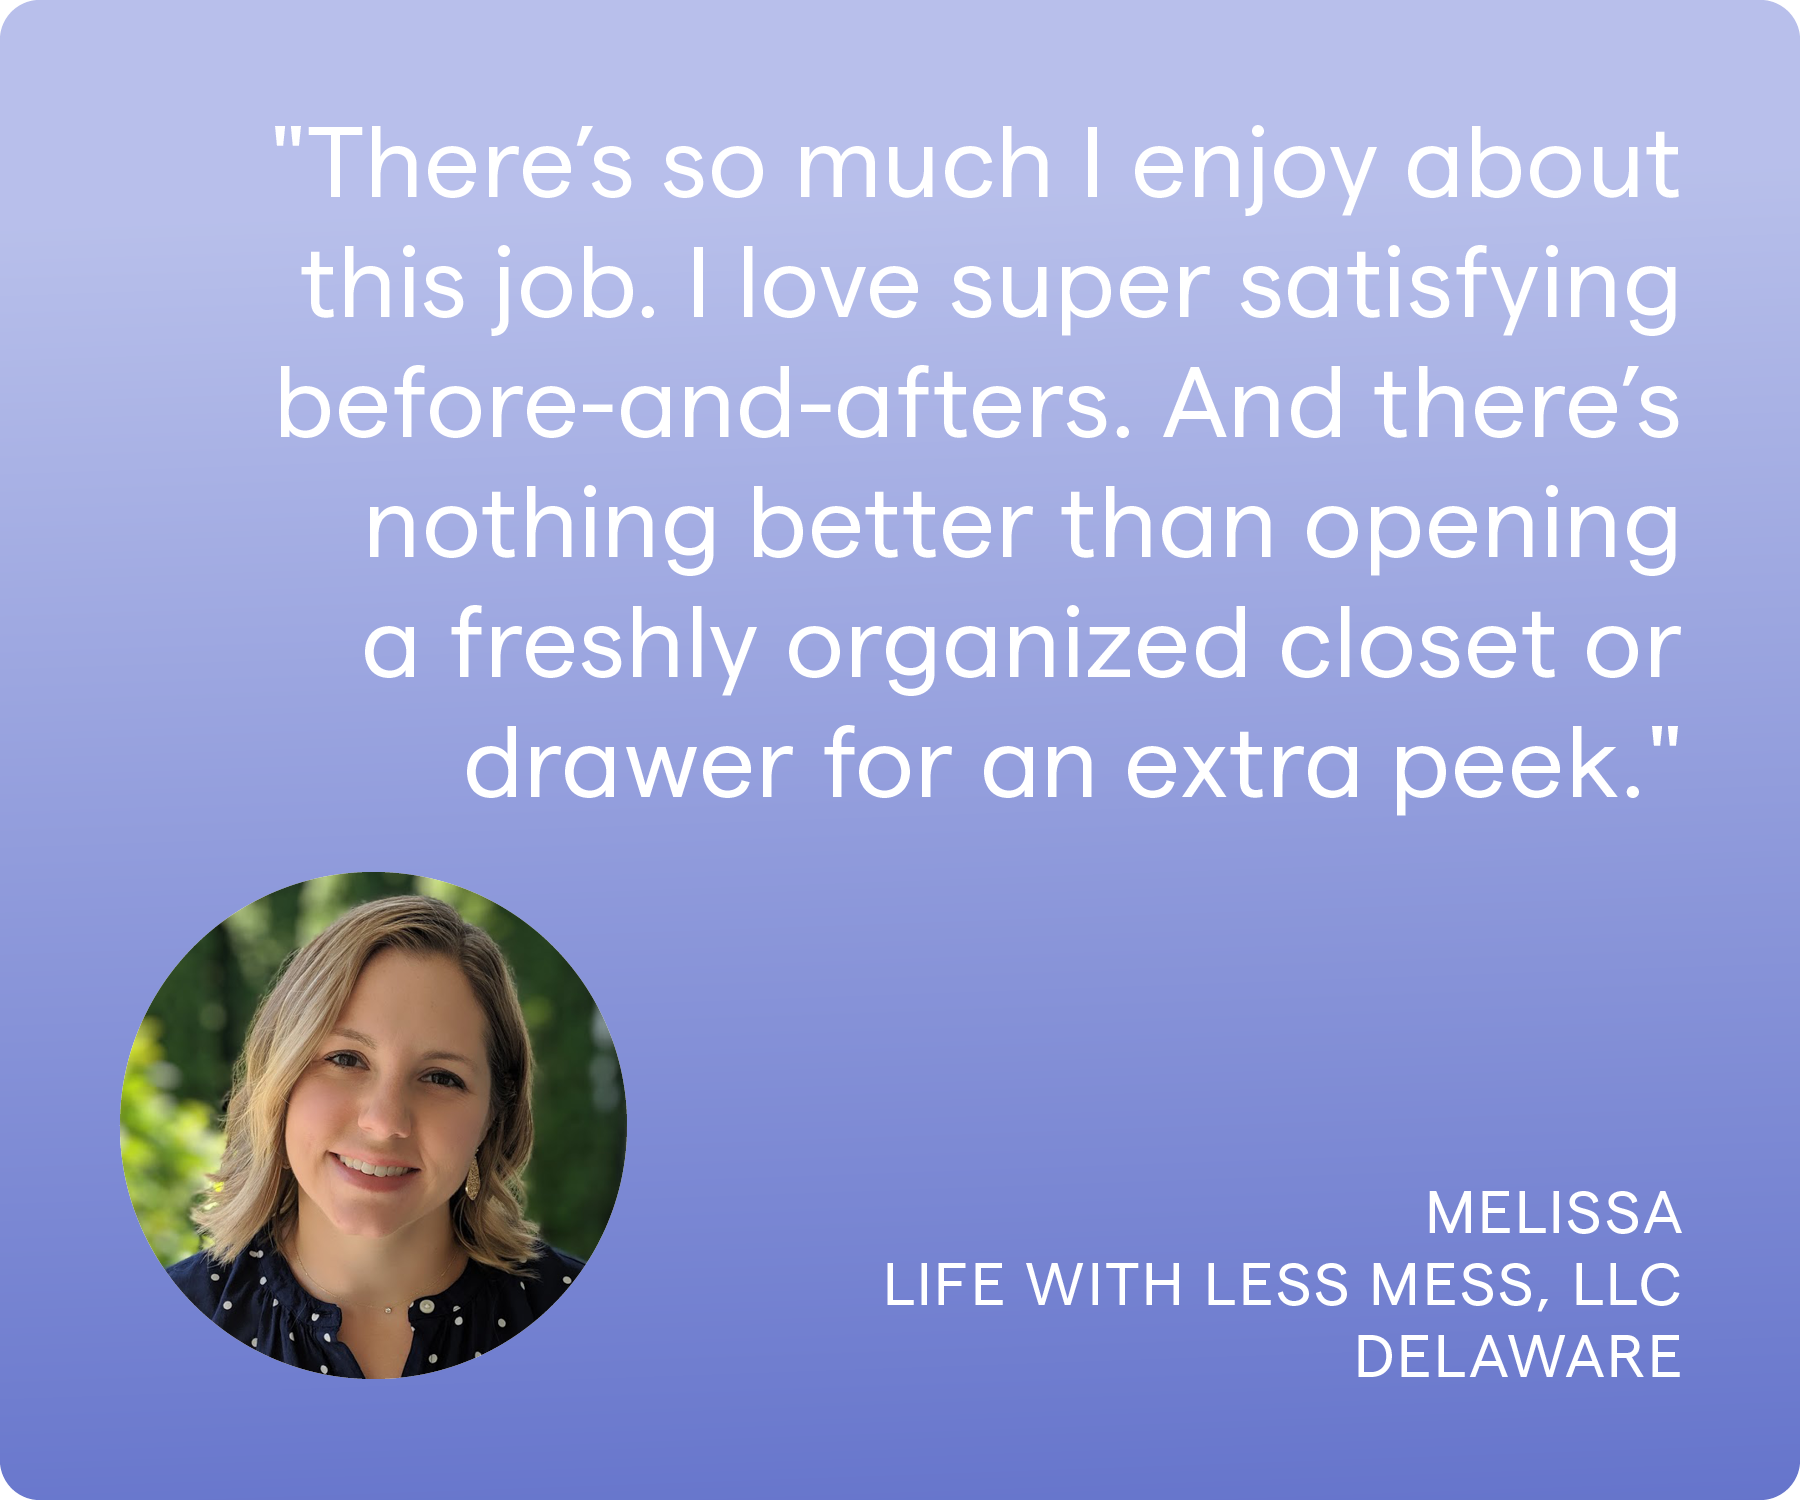 'There's so much I enjoy about this job. Topping the list, I'd say I love helping clients-- the burden that is lifted when I leave is visible. I love super satisfying before-and-afters. And there's nothing better than opening a freshly organized closet or drawer for an extra peek.' Melissa, Life With Less Mess LLC, Delaware